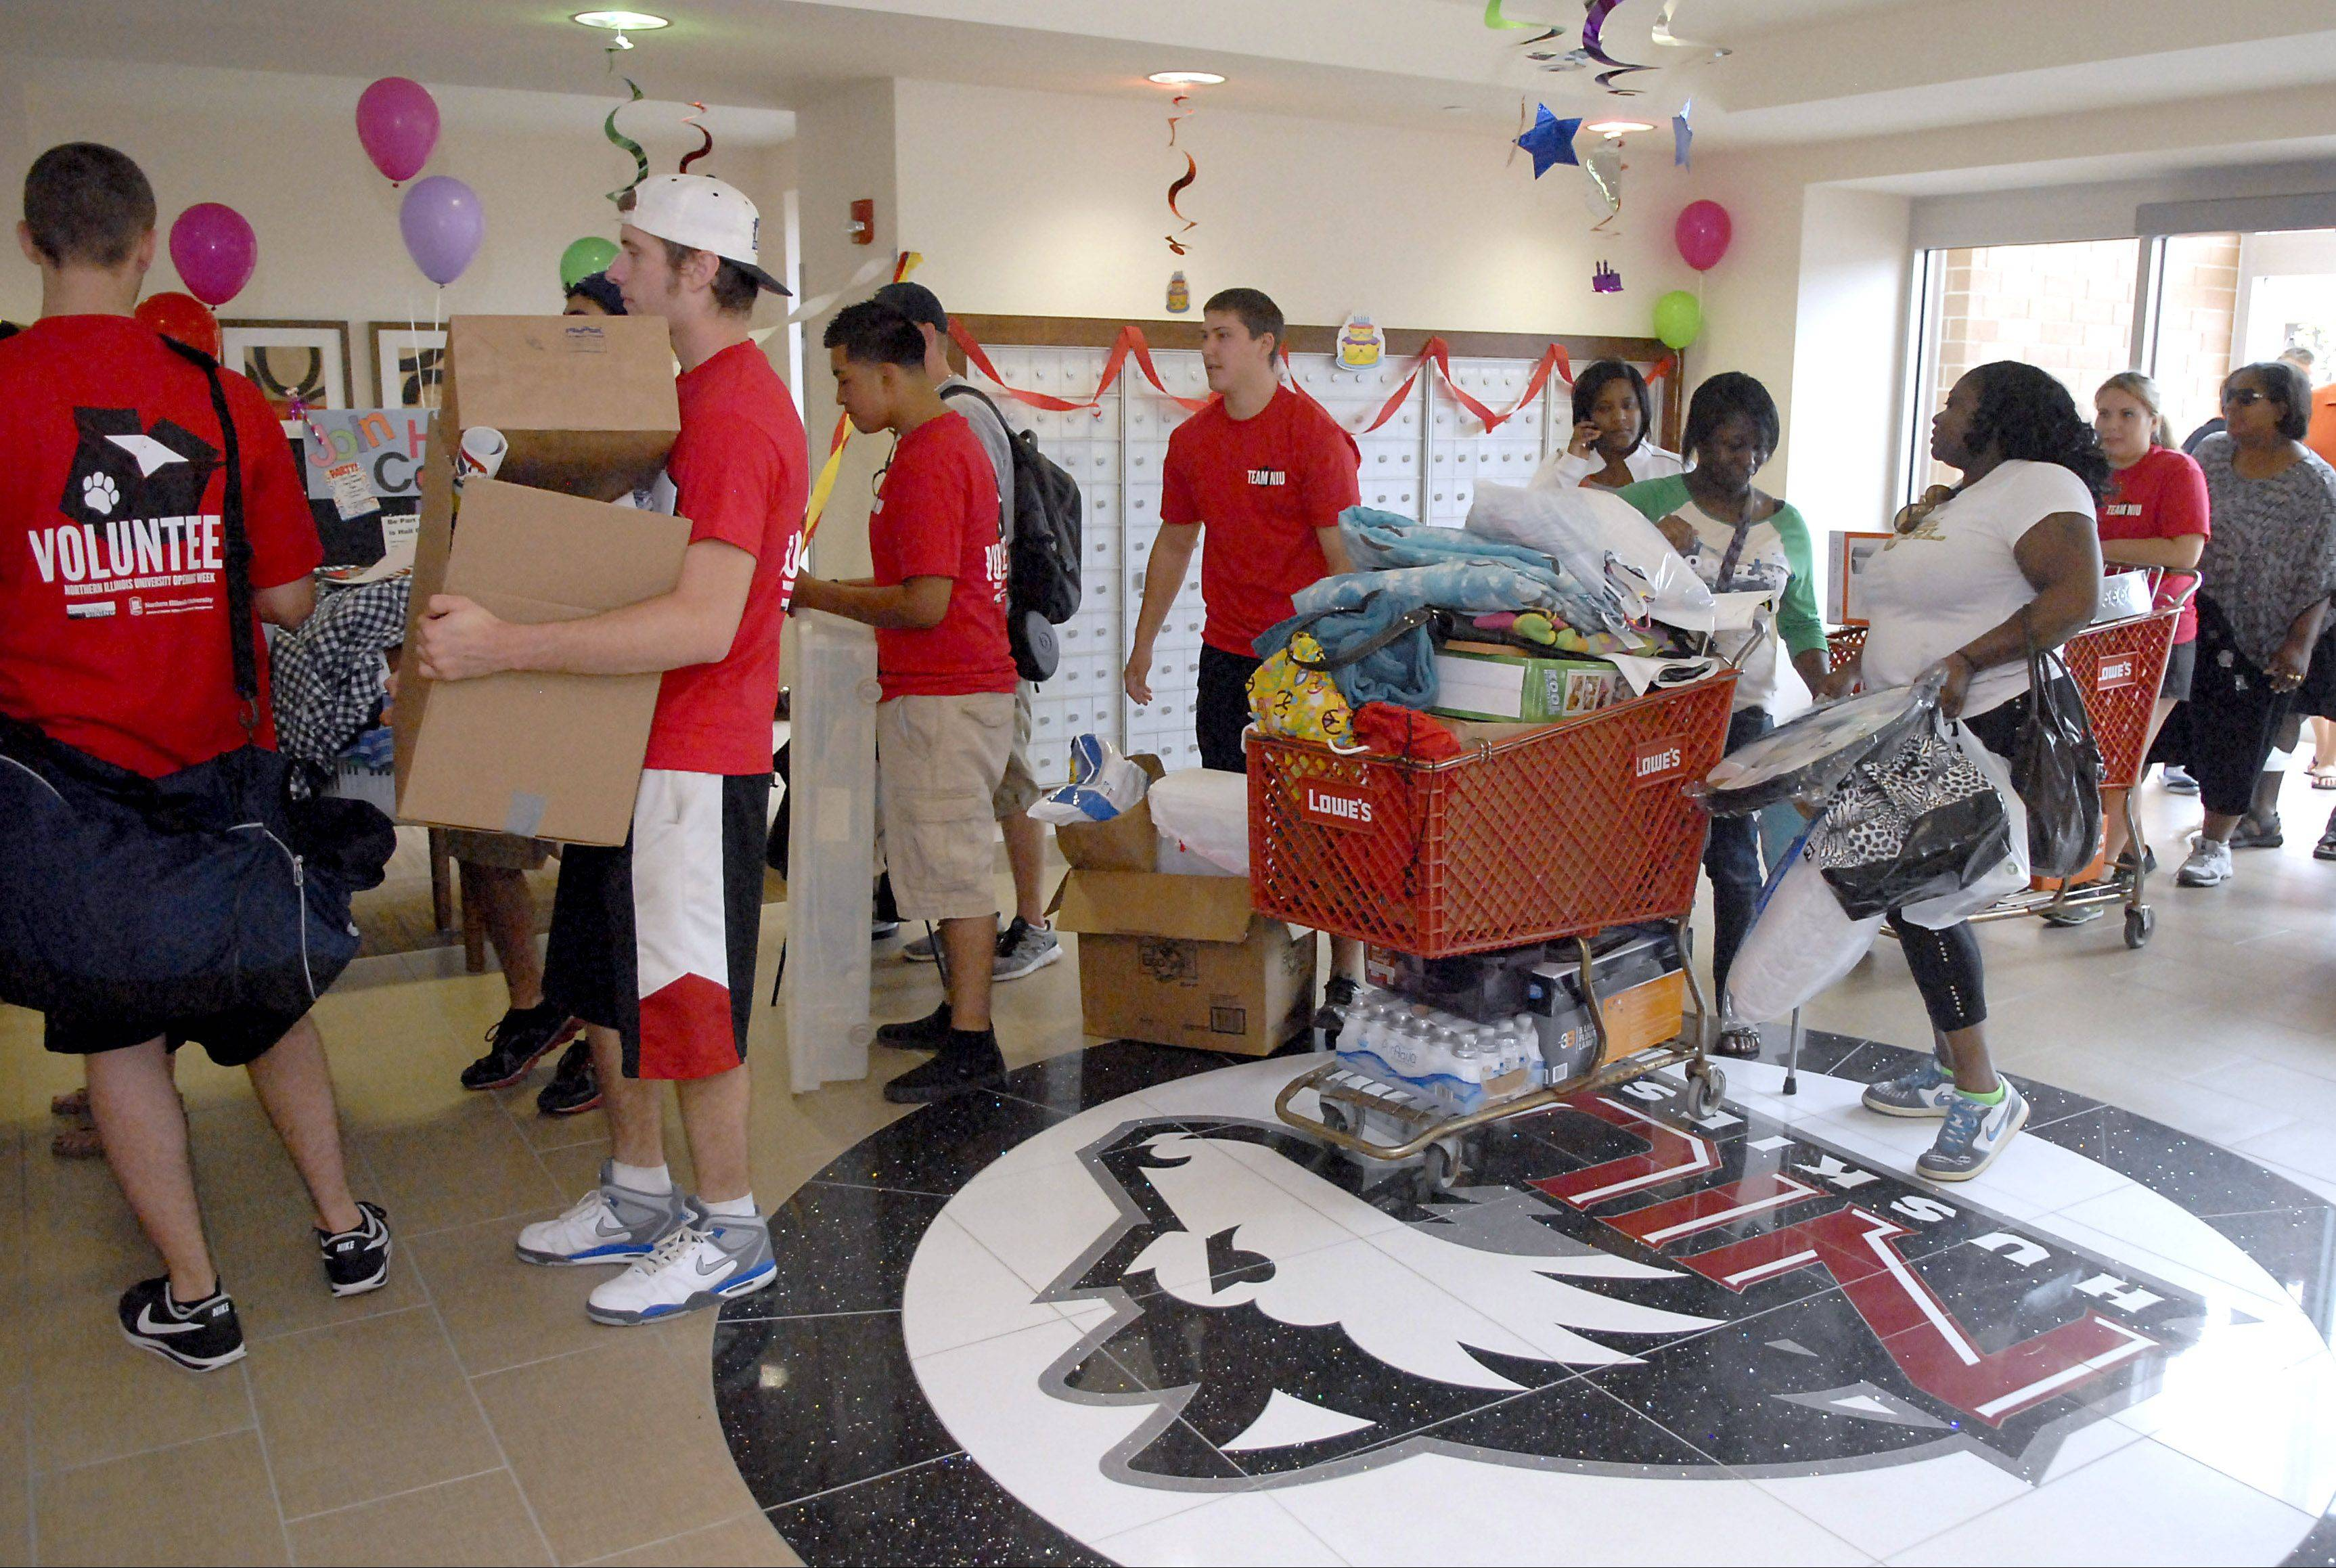 Volunteers help students on move-in day at New Residence Hall West Thursday at Northern Illinois University in DeKalb.